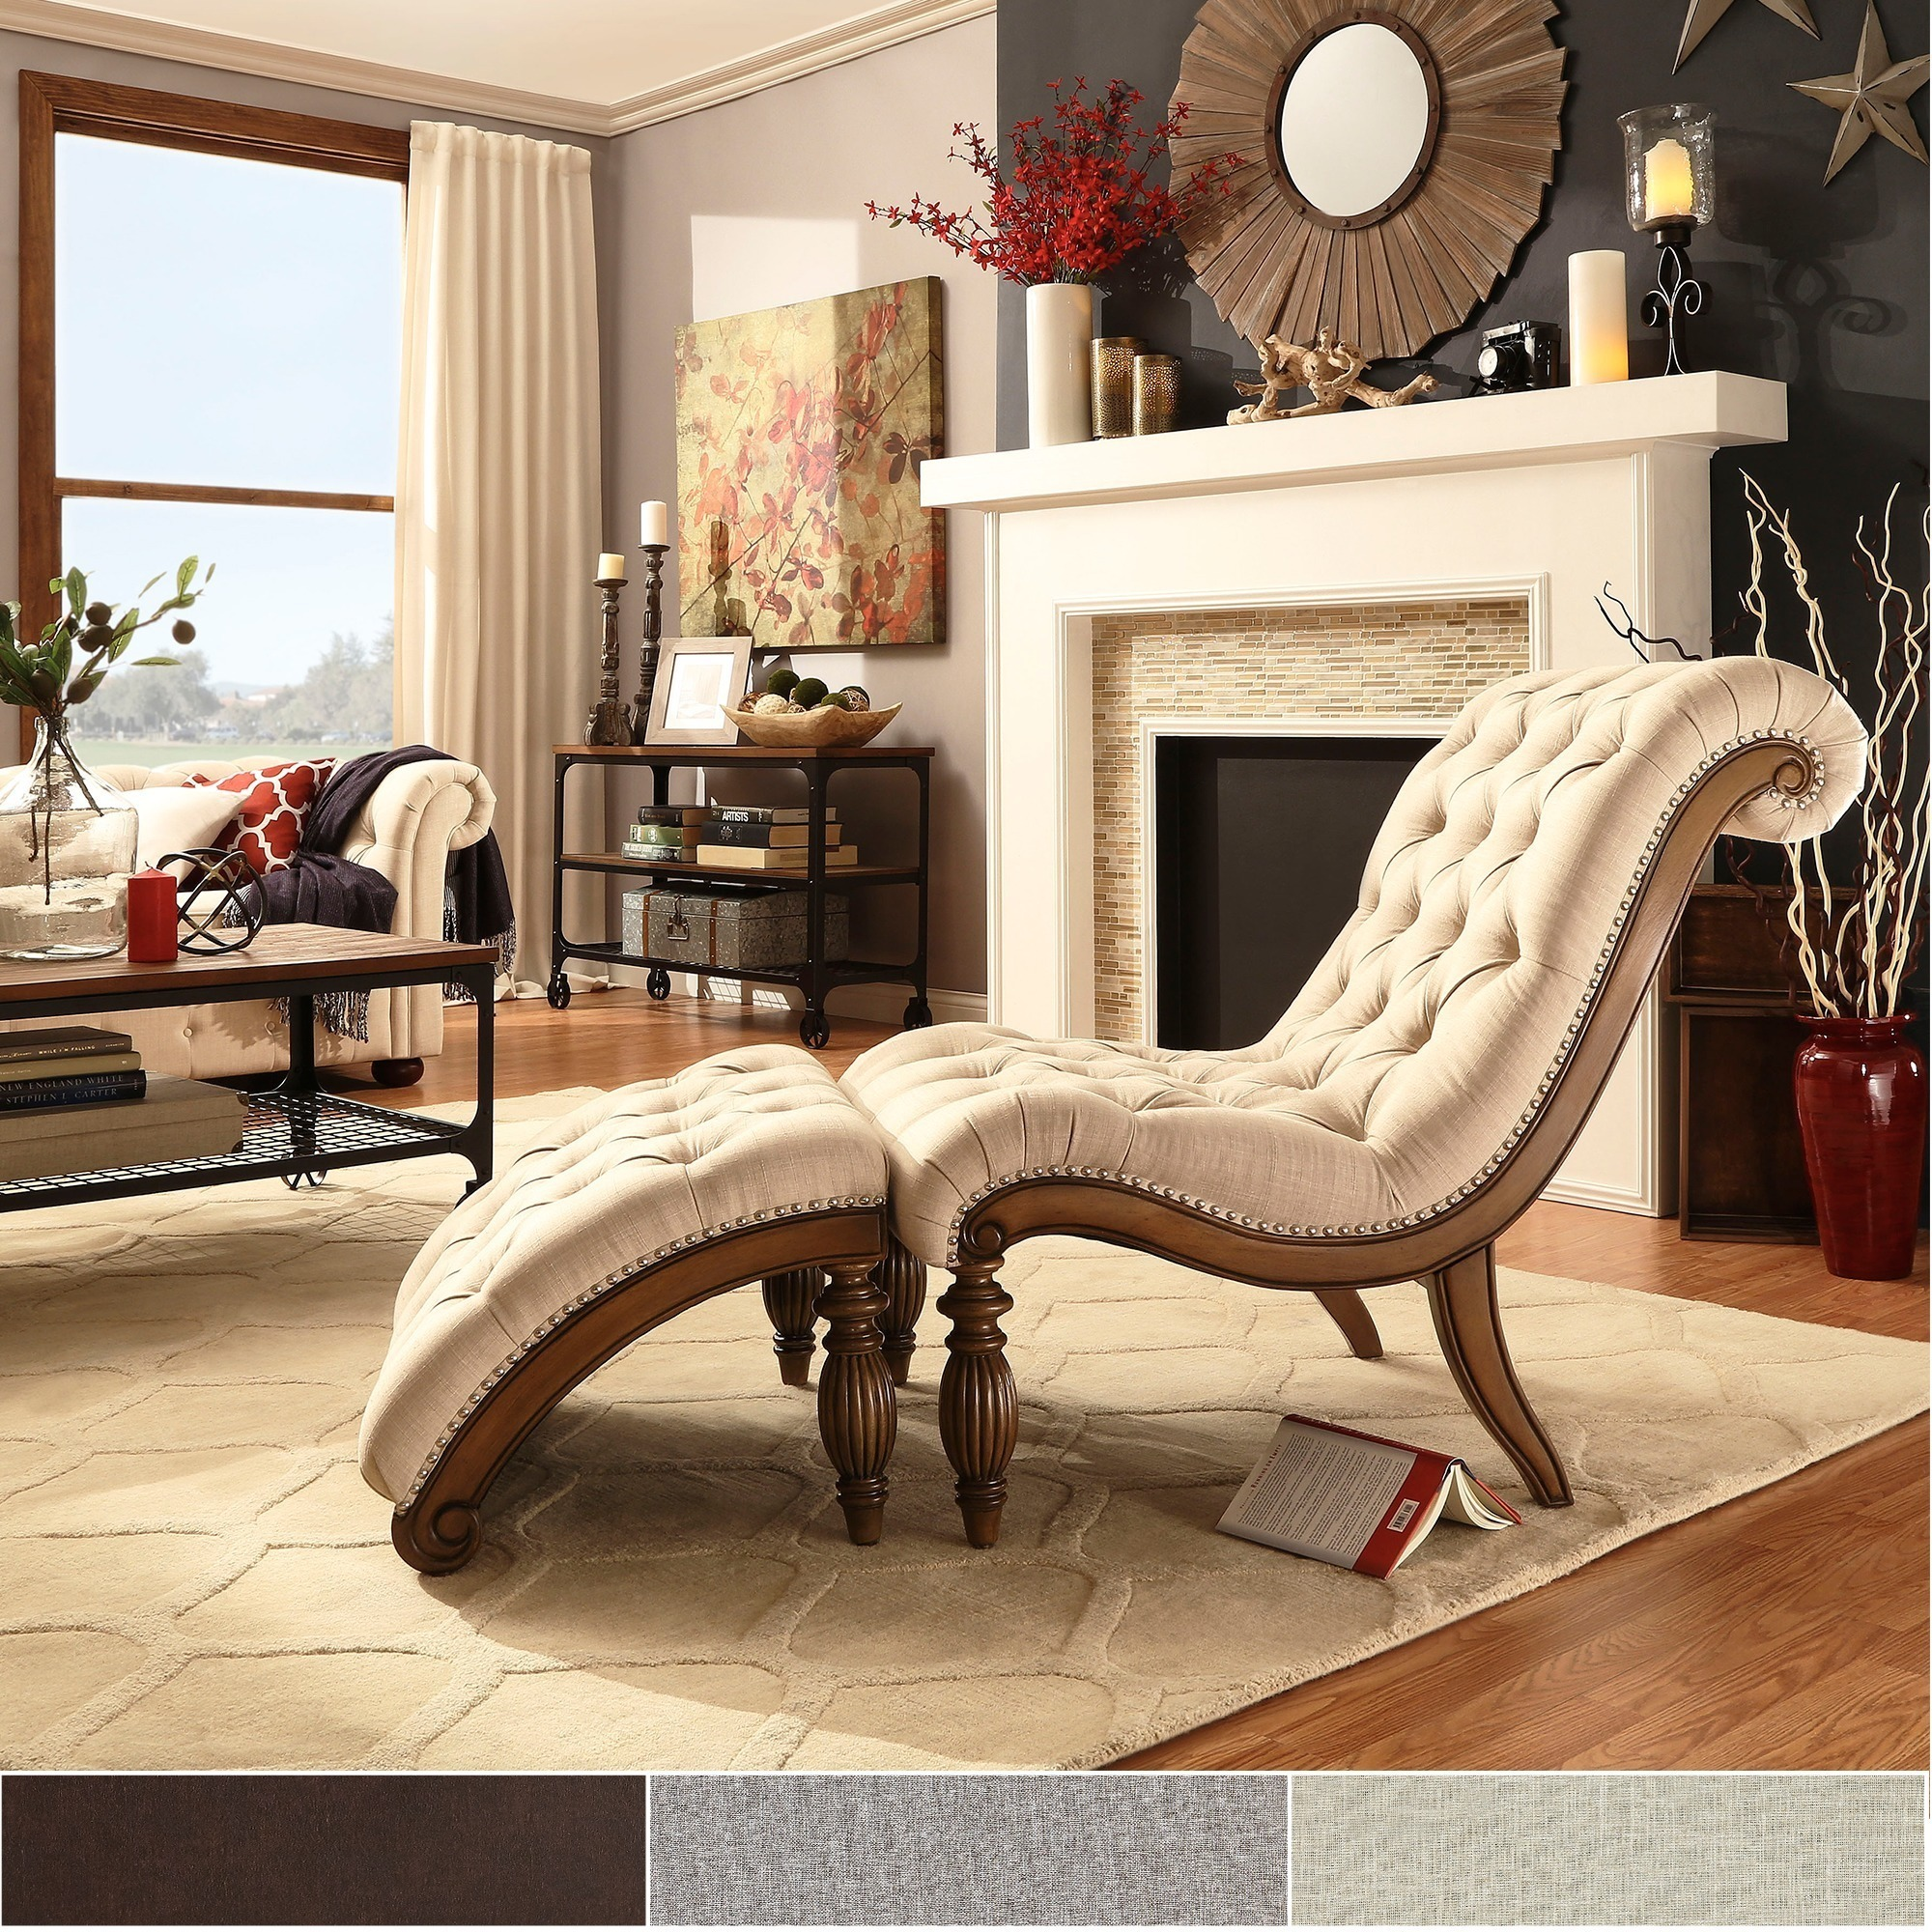 Bellagio Clic Tufted Chaise Lounge With Ottoman By Inspire Q